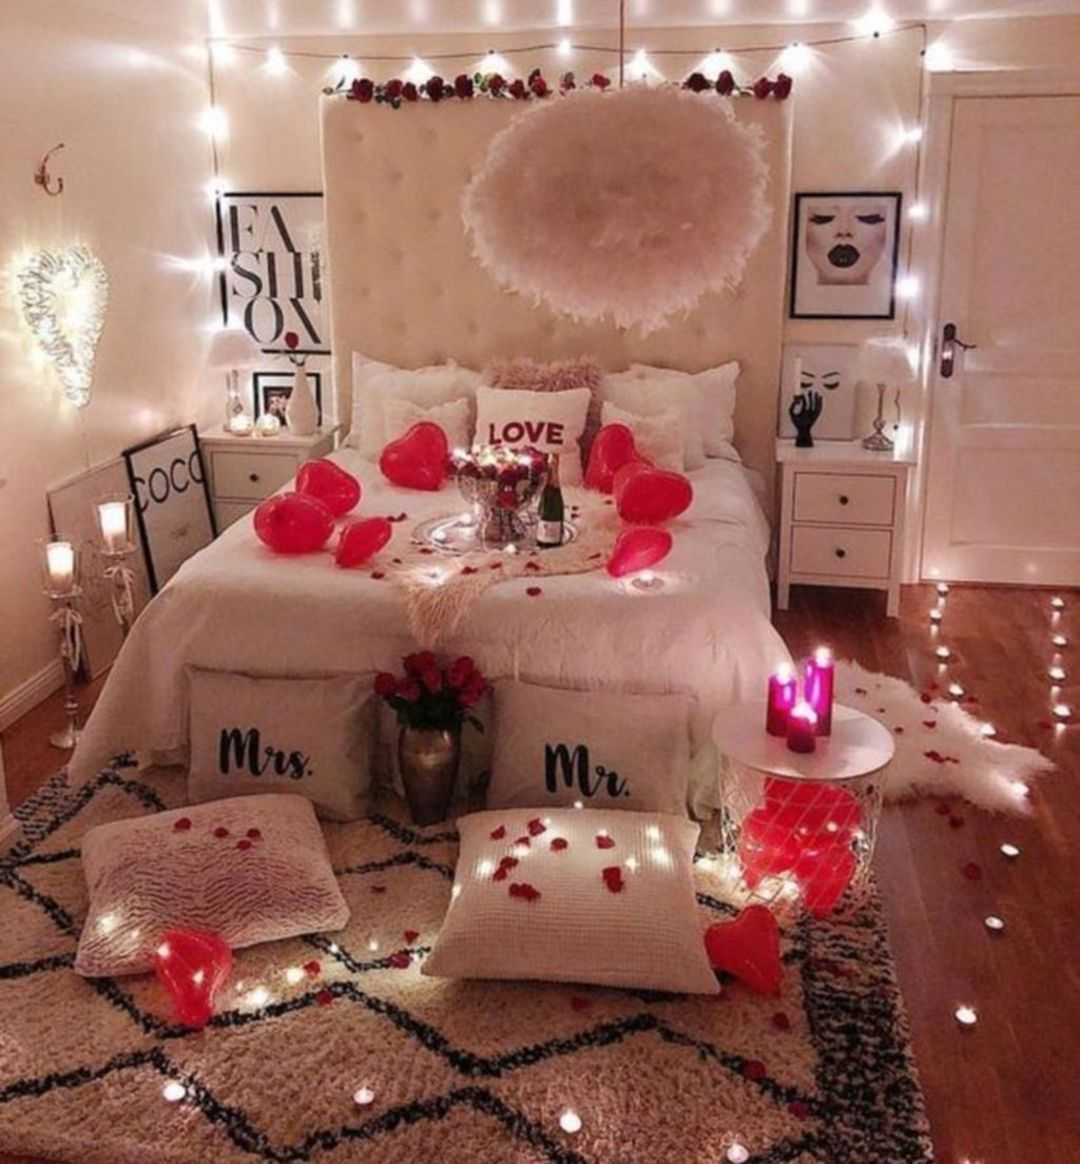 Romantische Schlafzimmer Deko Awesome 10+ Romantic Bedroom Ideas On Valentine's Day For Your Special Moments 10+ Romantic … | Valentines Bedroom, Romantic Bedroom Decor, Romantic Room Decoration